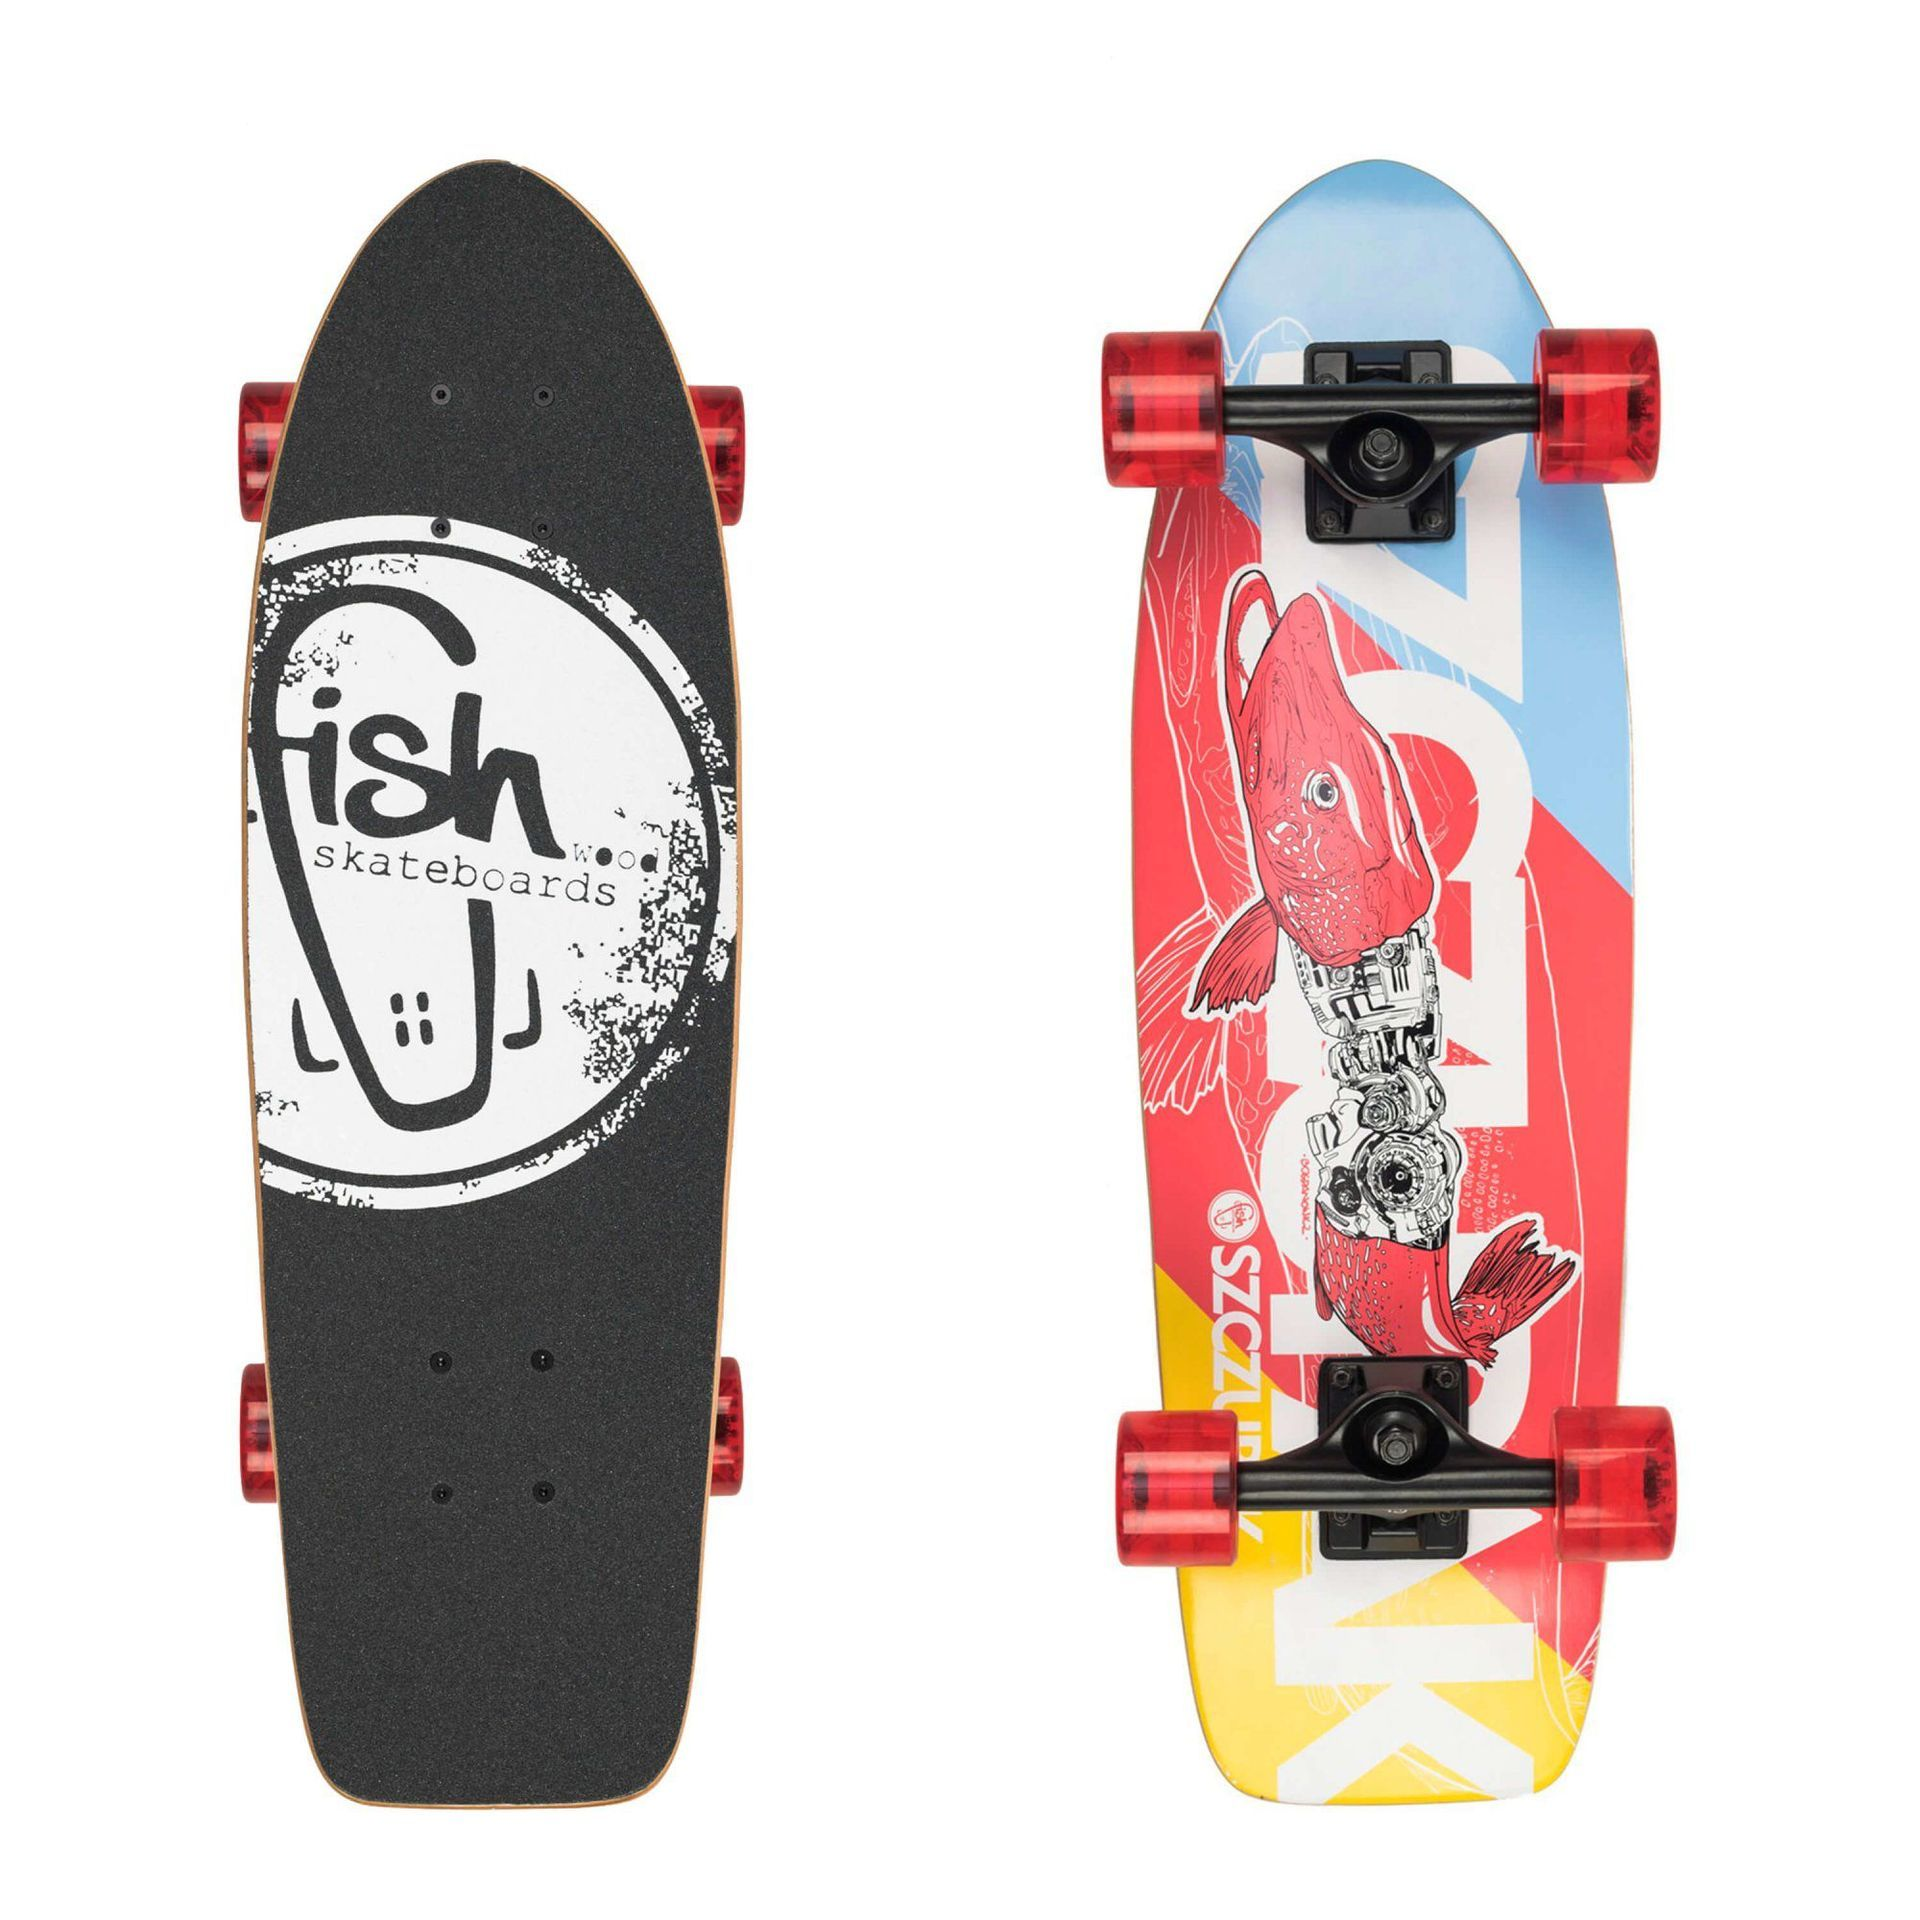 FISHBOARD FISH SKATEBOARDS CRUISER 26 SZCZUPAK|BLACK|TRANSPARENT RED 1